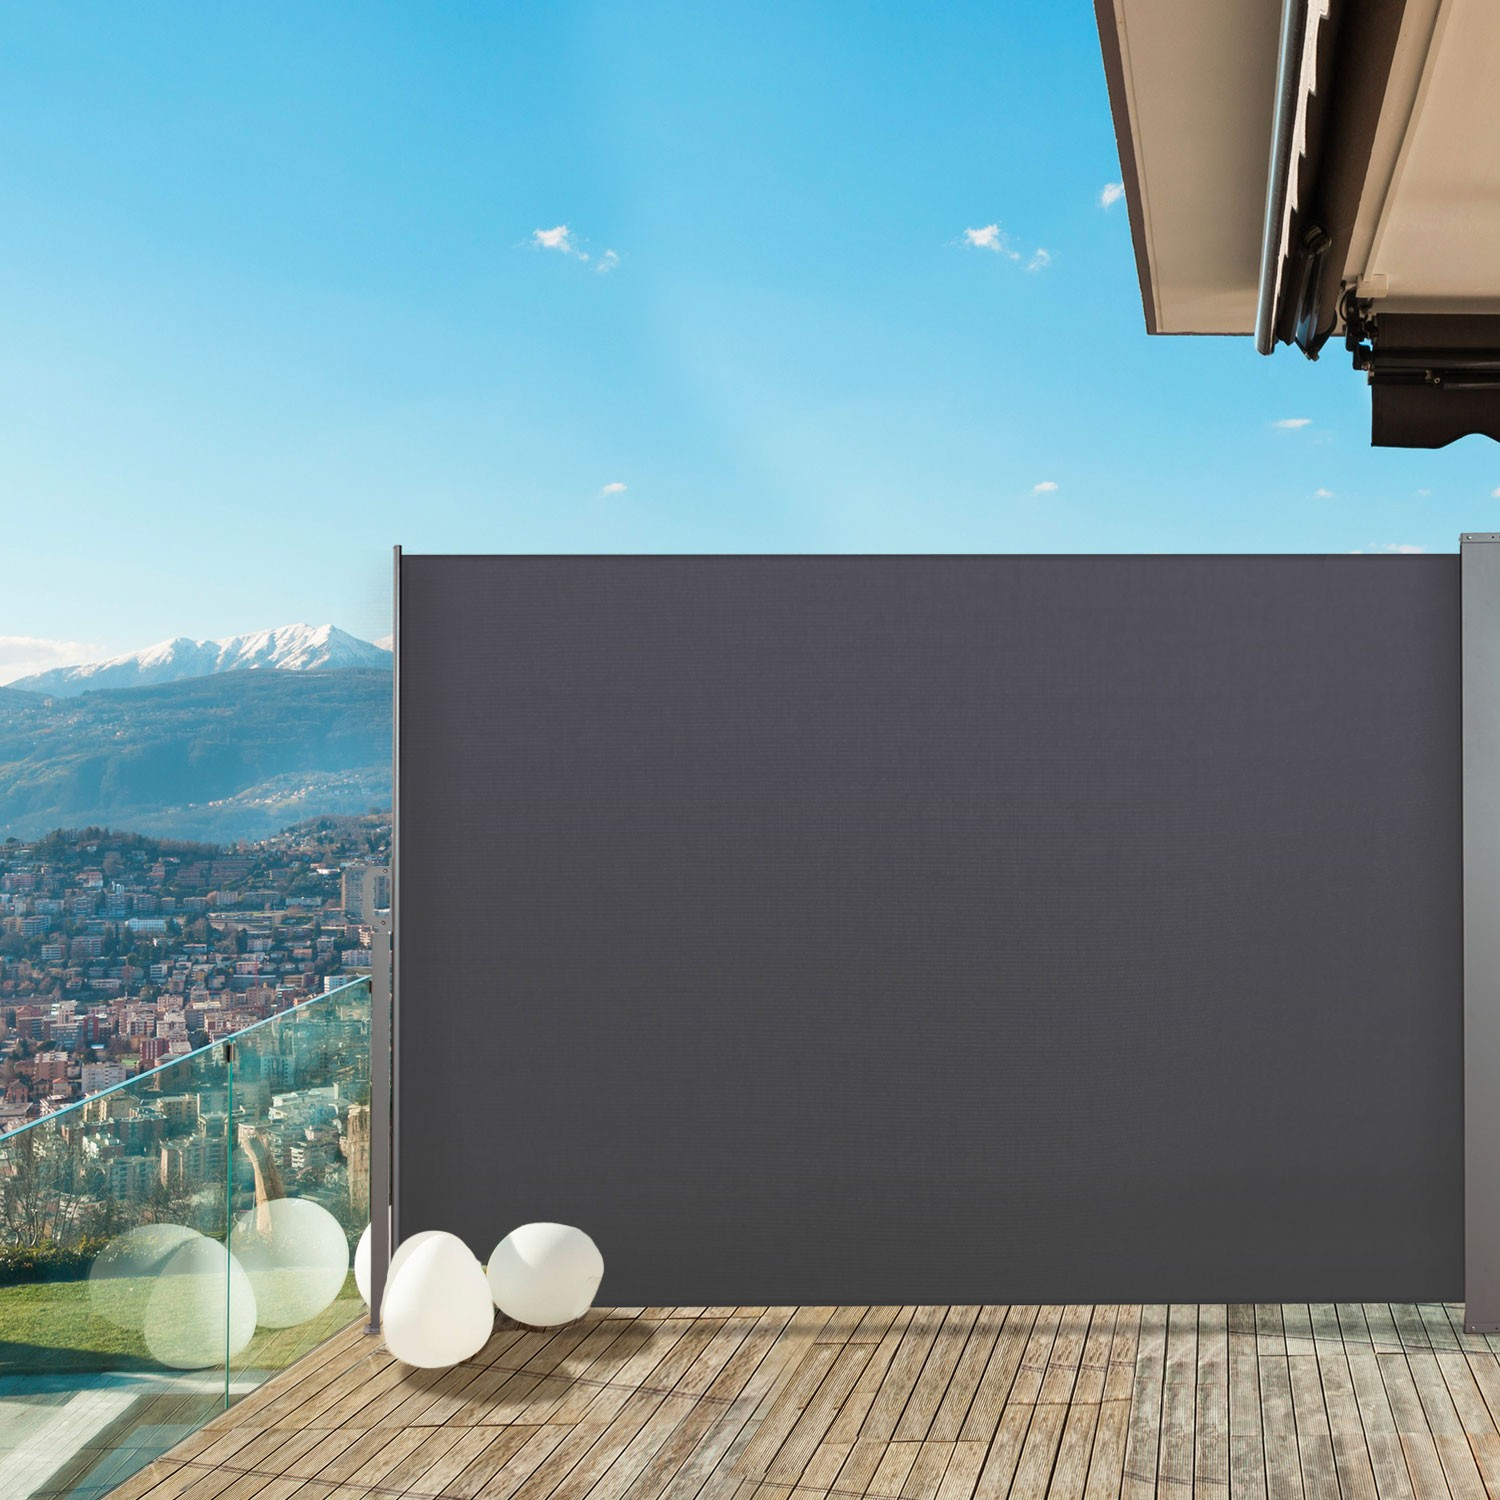 Paravent ext rieur r tractable 300x200cm gris anthracite store vert - Paravent retractable pas cher ...